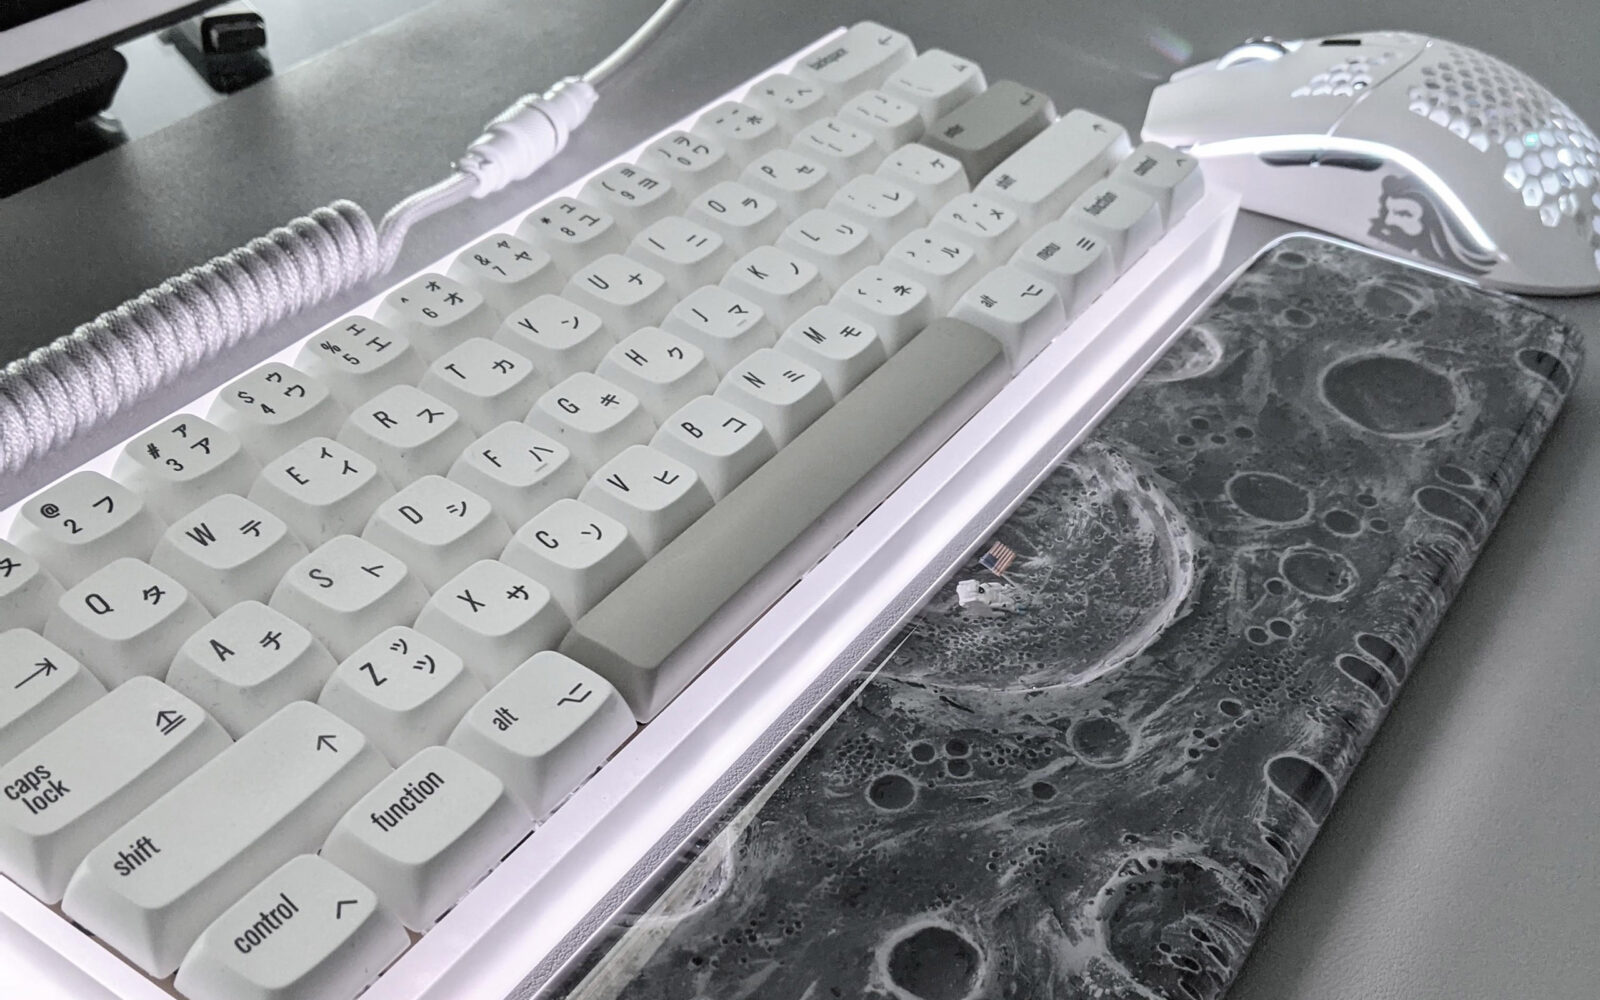 A fascinating Mechanical Keyboard Setup inspired by the NASA moon landing